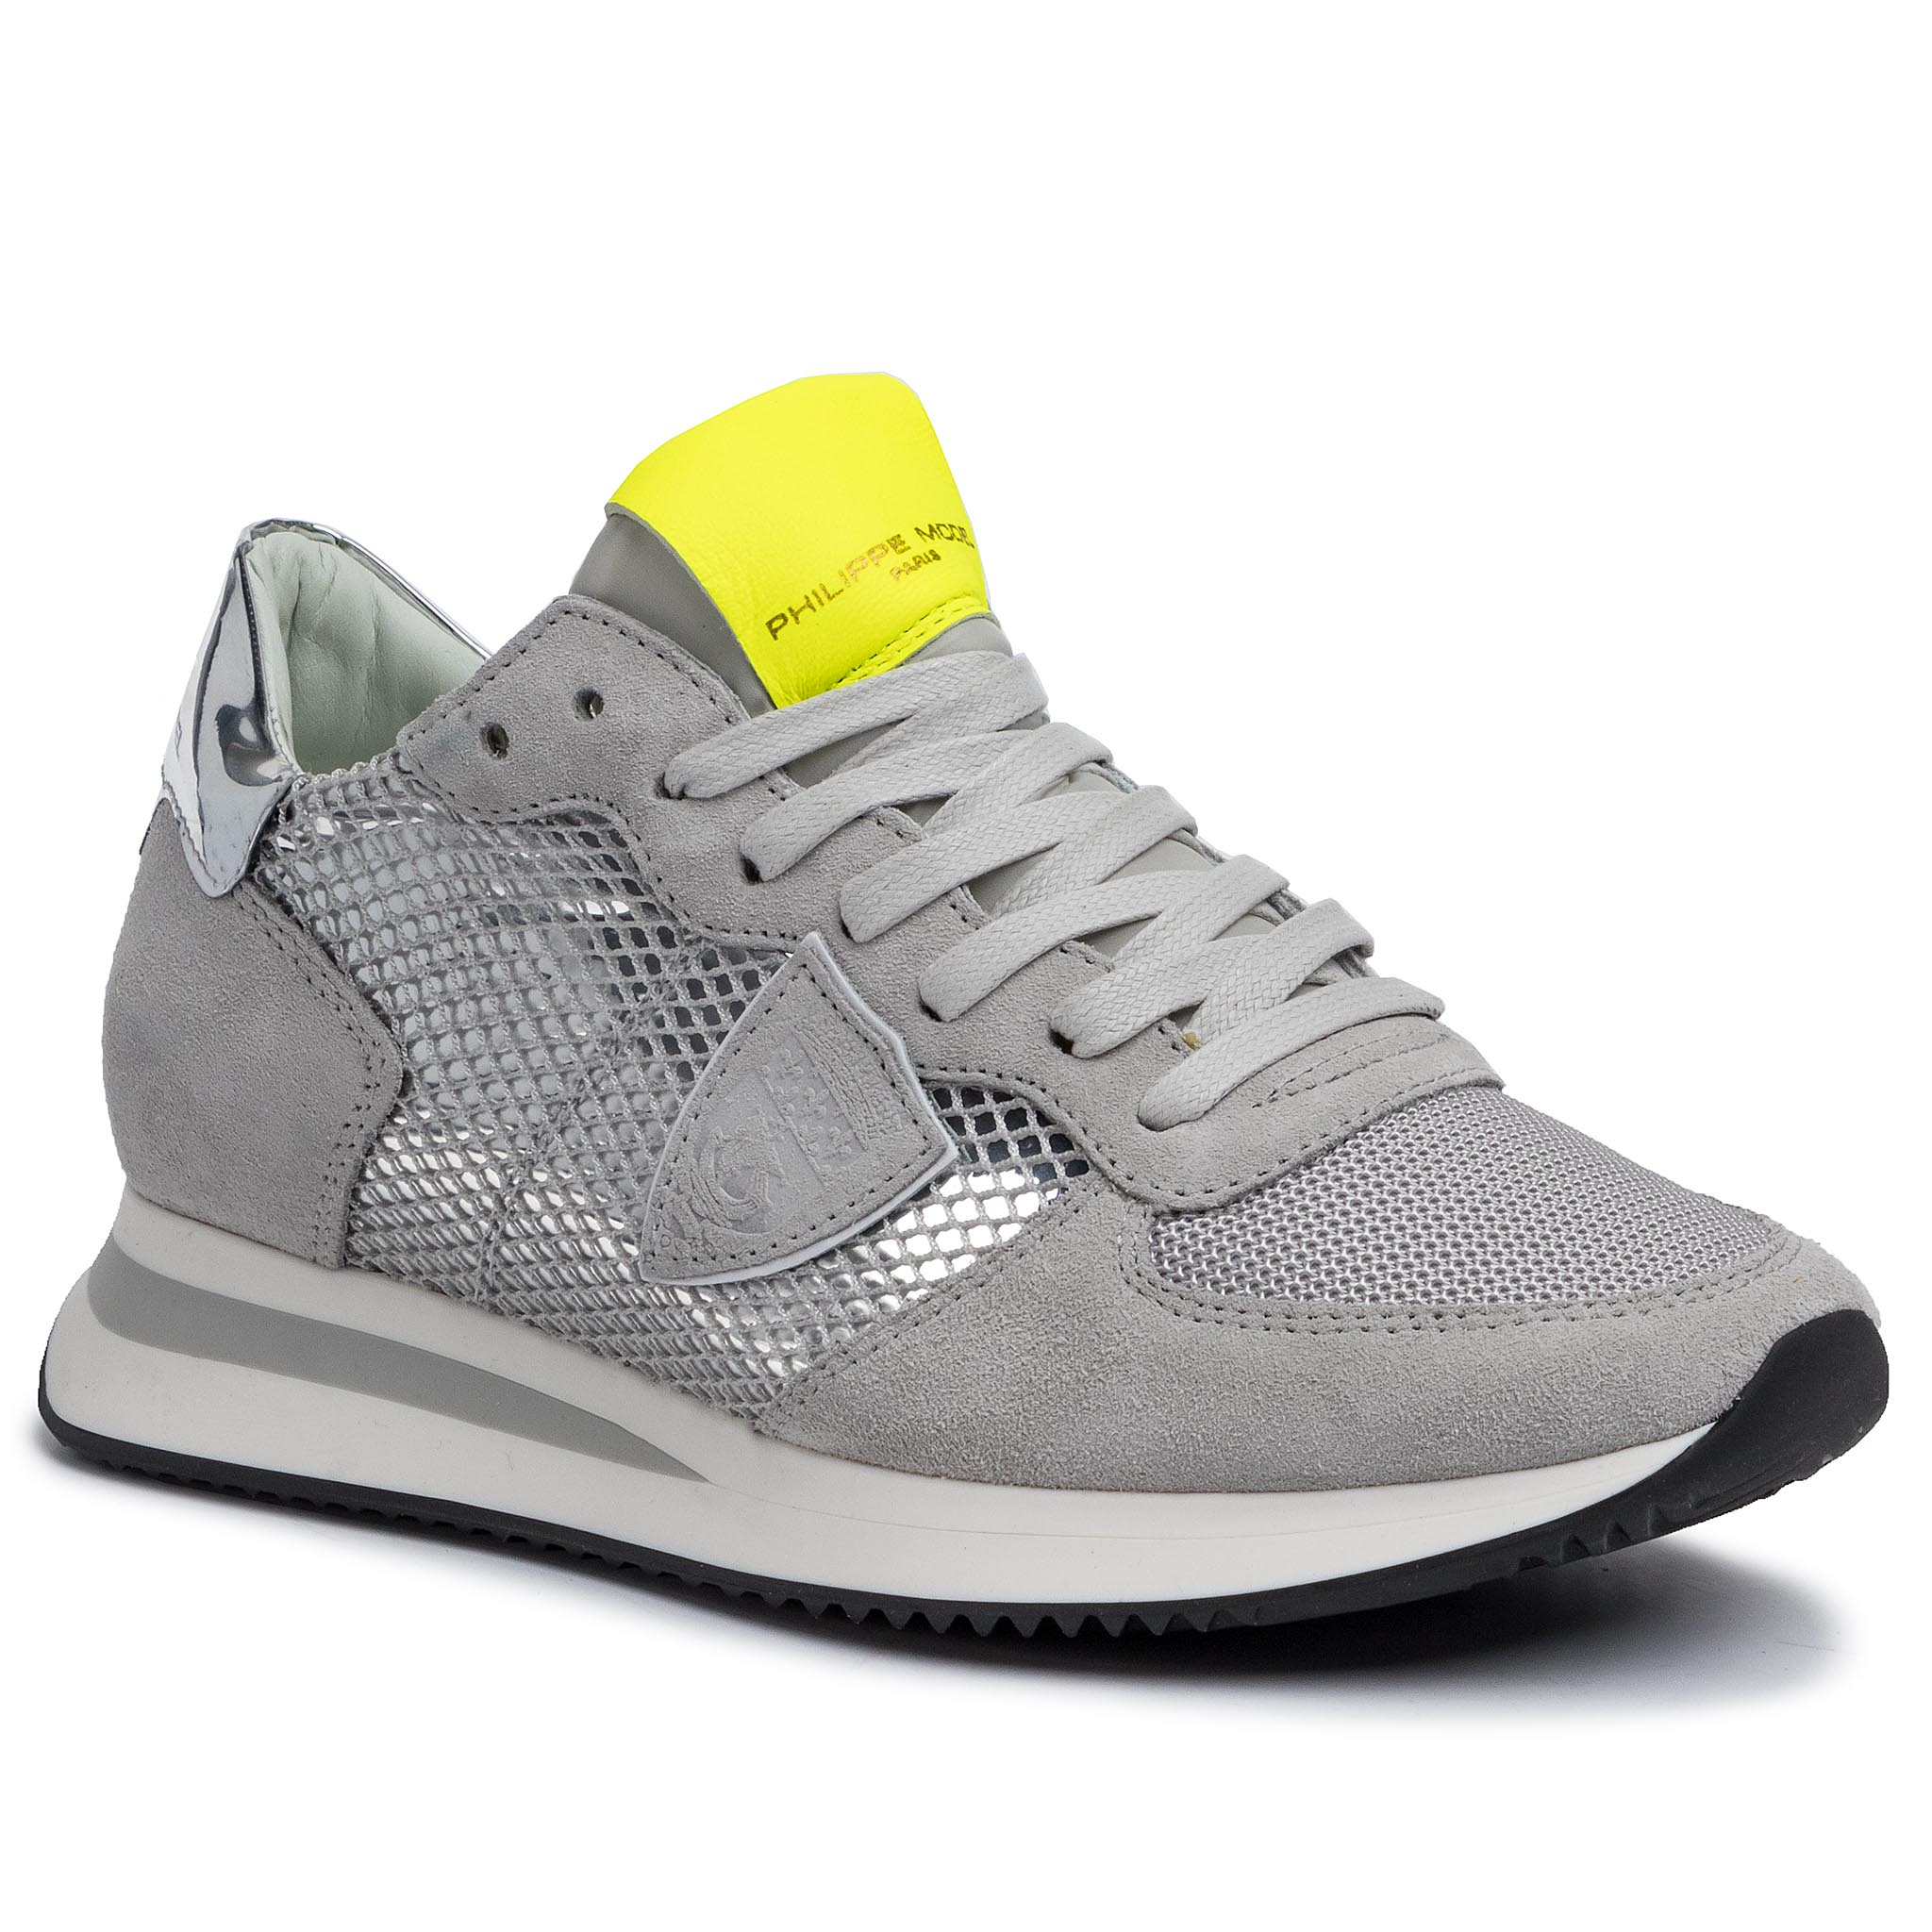 Sneakers PHILIPPE MODEL - Trpx TZLD MR02 Gris Jaune